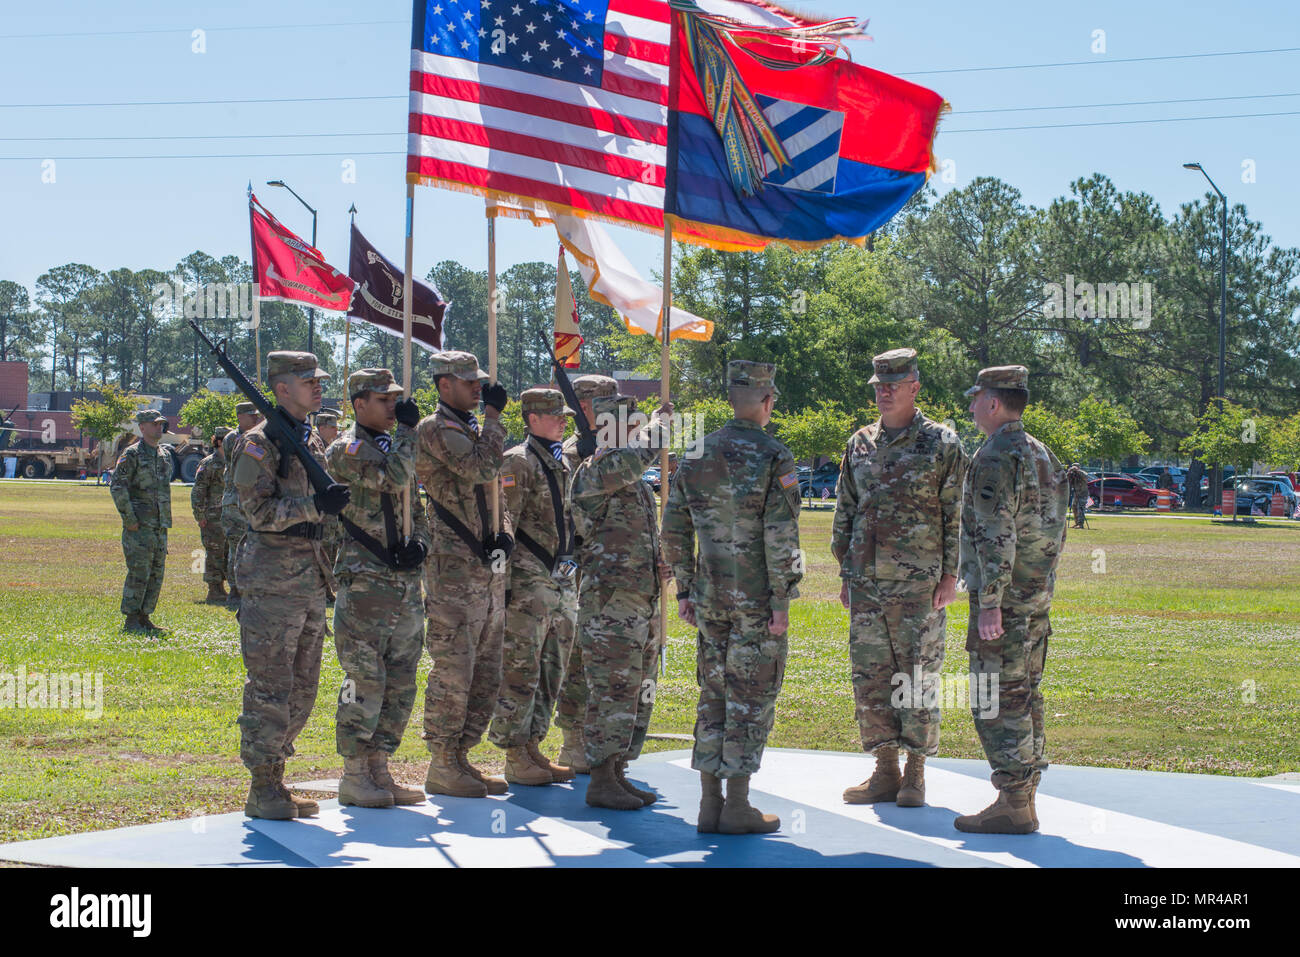 Command Sgt. Maj. Walter Tagalicud, left, 3rd Infantry Division command sergeant major, prepares to pass the division colors to outgoing commander, Maj. Gen. James Rainey. The 3rd Infantry Division change of command ceremony was held on Cotrell Field at Fort Stewart, GA, May 8, 2017. Maj. Gen. Leopoldo Quintas assumed command. (U.S. Army Photo by Lt. Col. Brian J. Fickel) - Stock Image